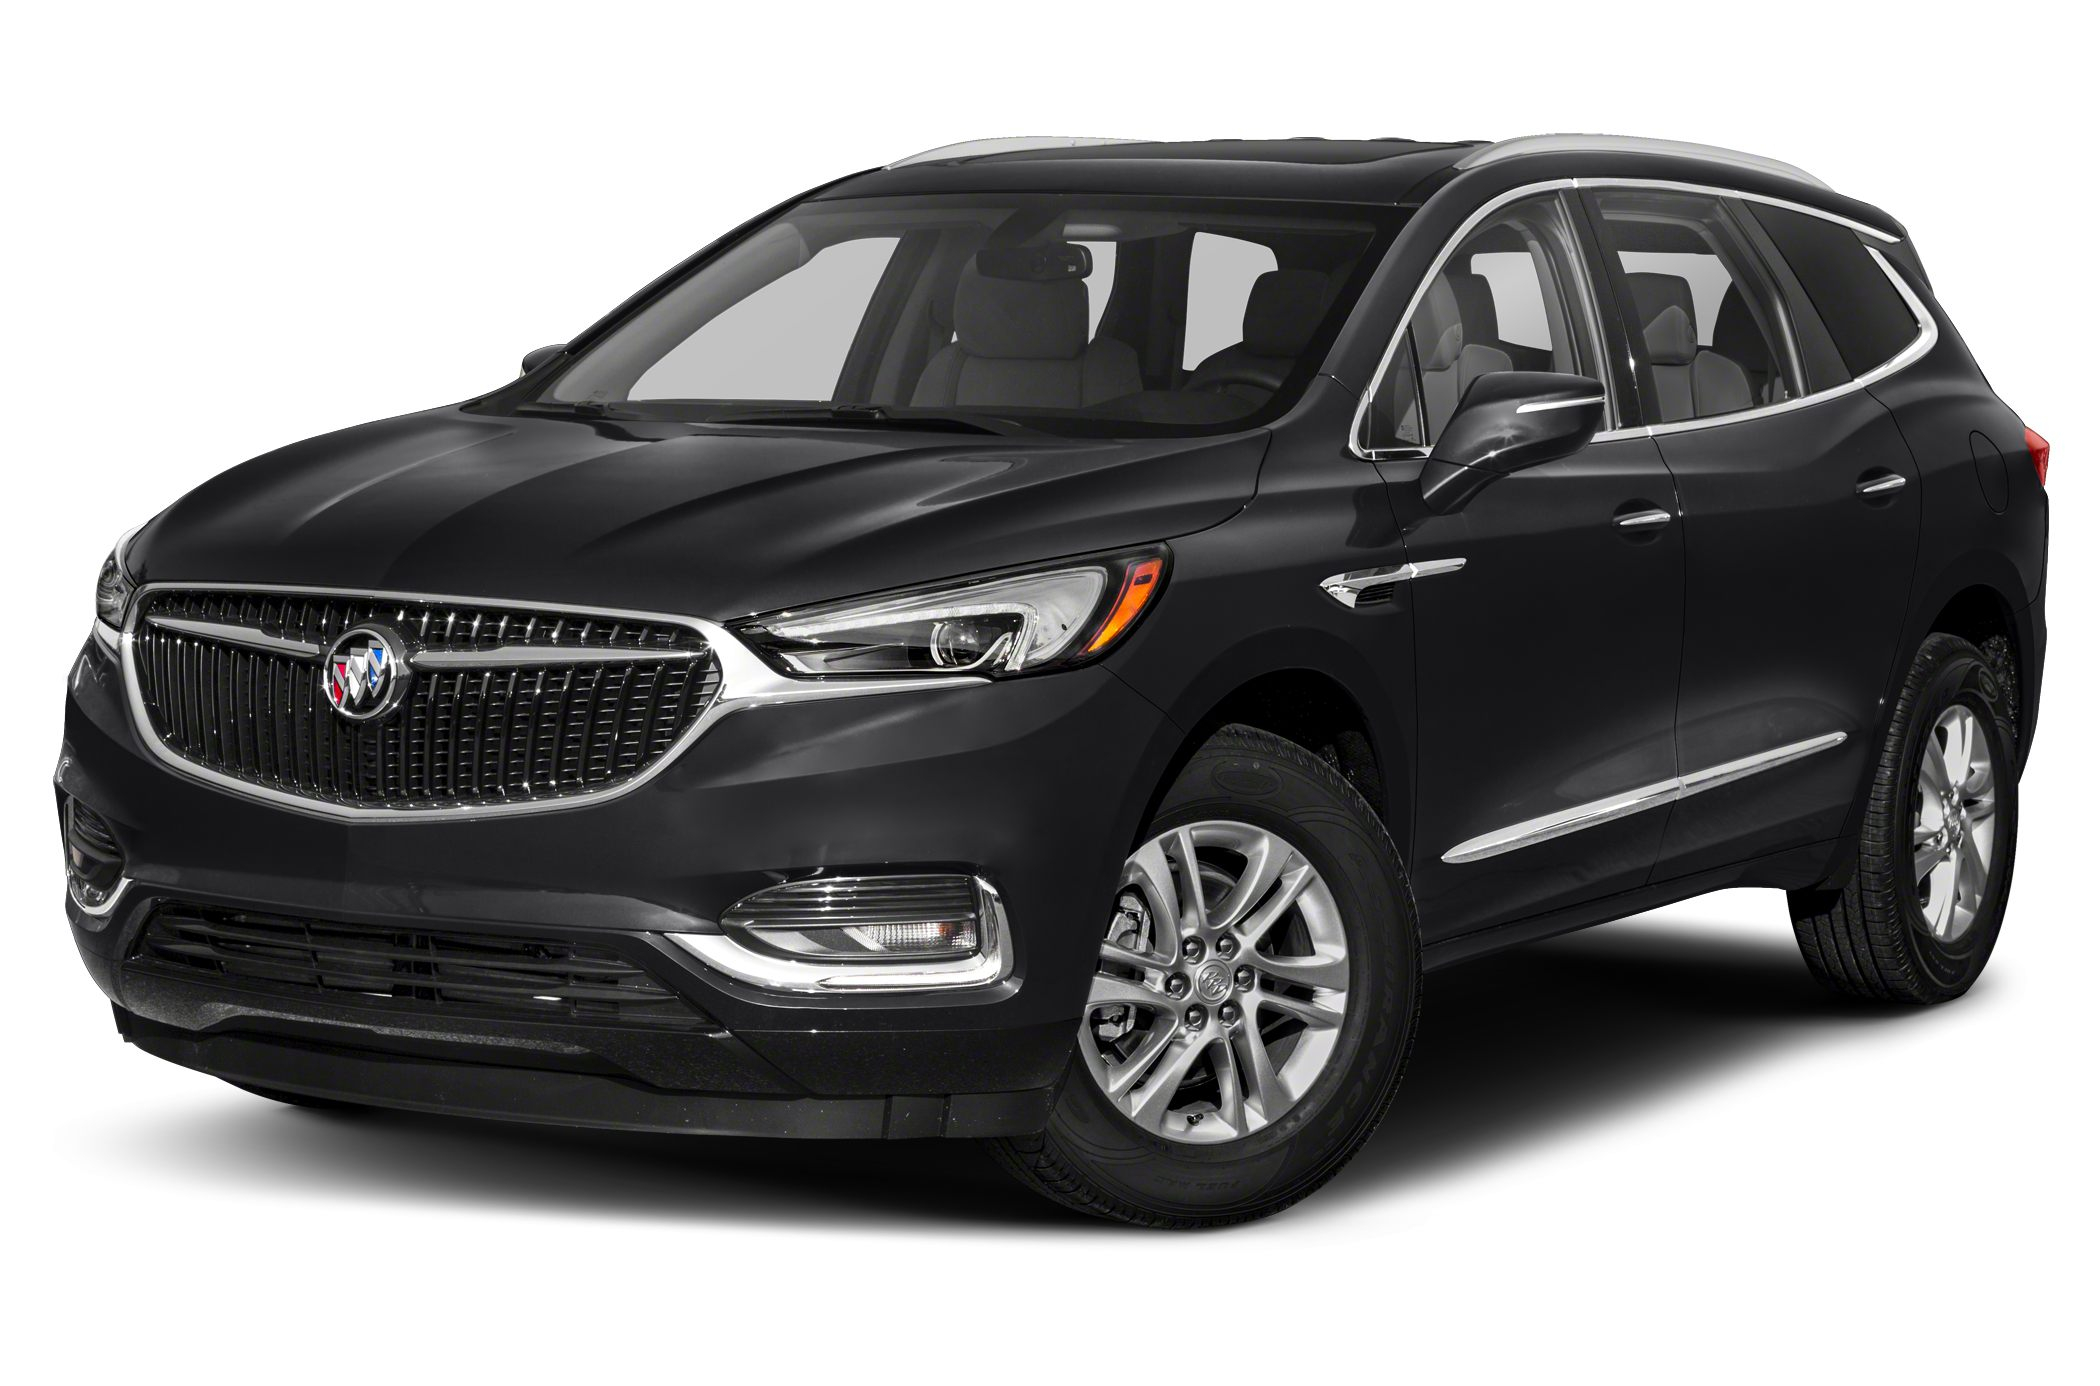 2020 Buick Enclave Deals, Prices, Incentives & Leases New 2021 Buick Enclave Awd, Build, Lease